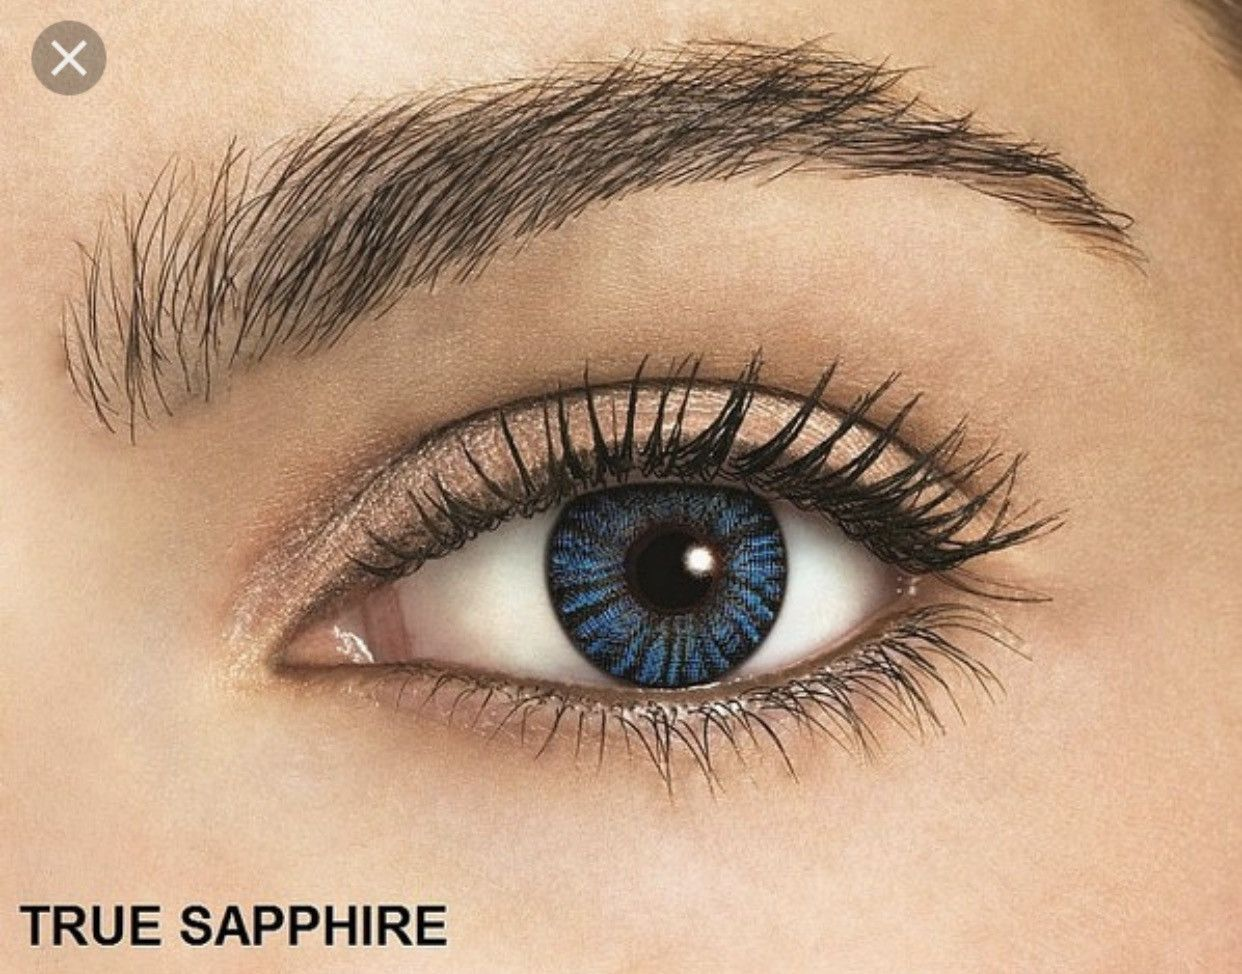 True Sapphire Prescription Colored Contacts Colored Contacts Make Eyes Pop